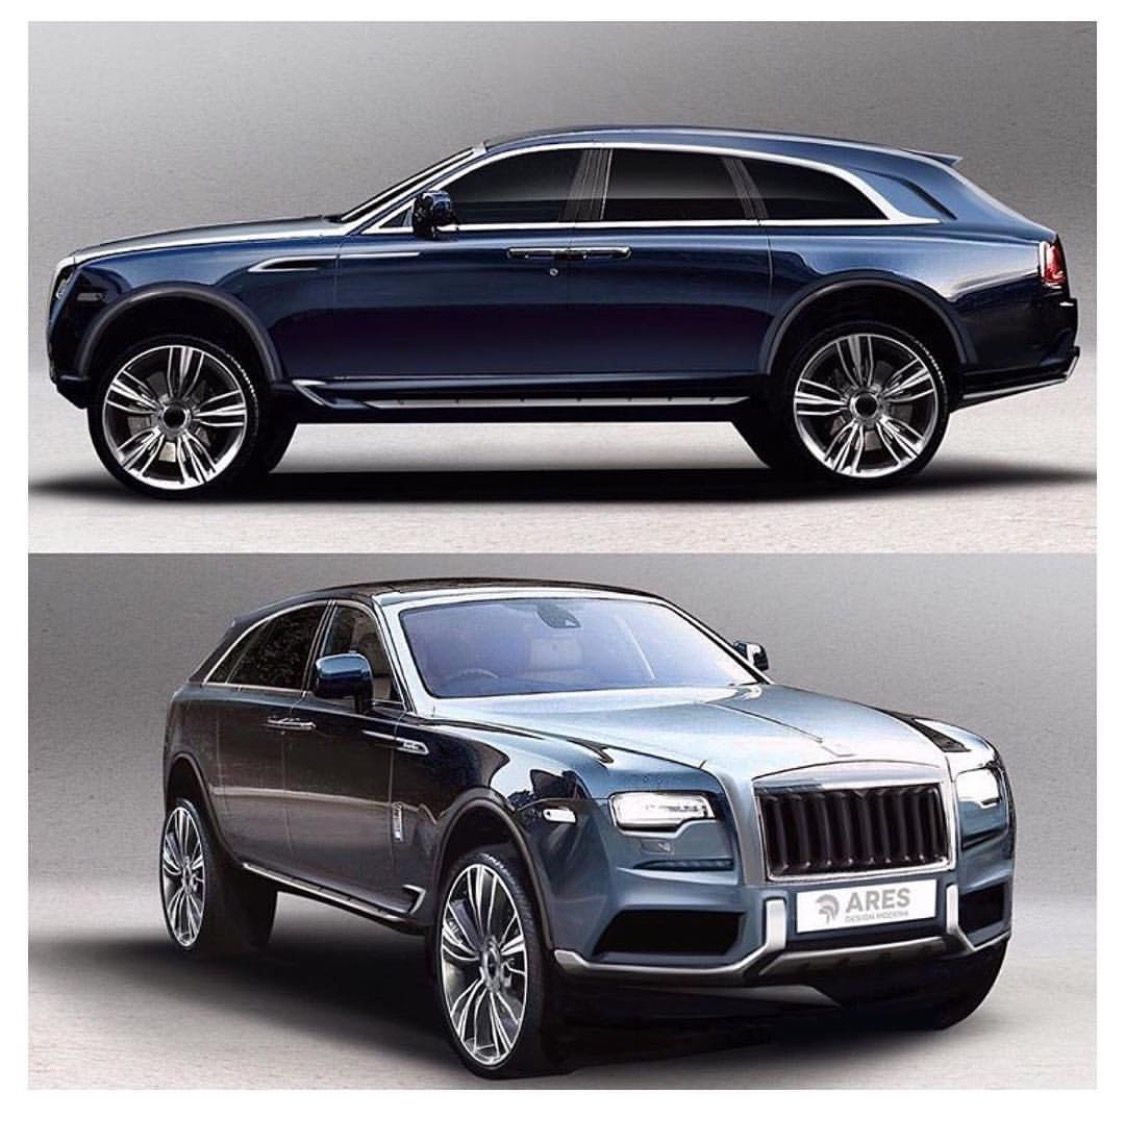 Rolls Royce Cars, Luxury Cars